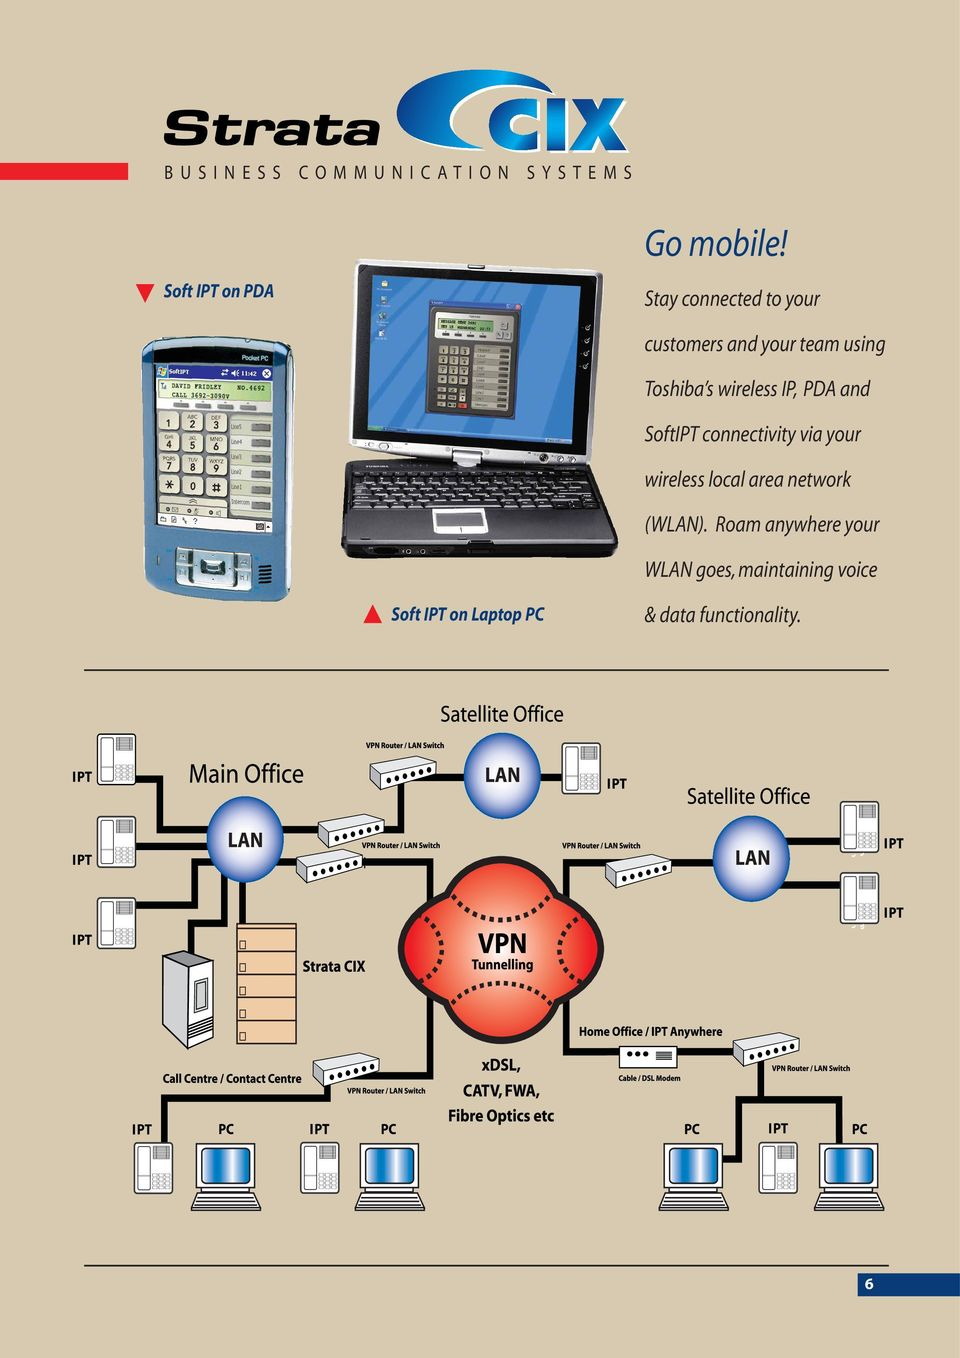 and SoftIPT connectivity via your wireless local area network (WLAN).